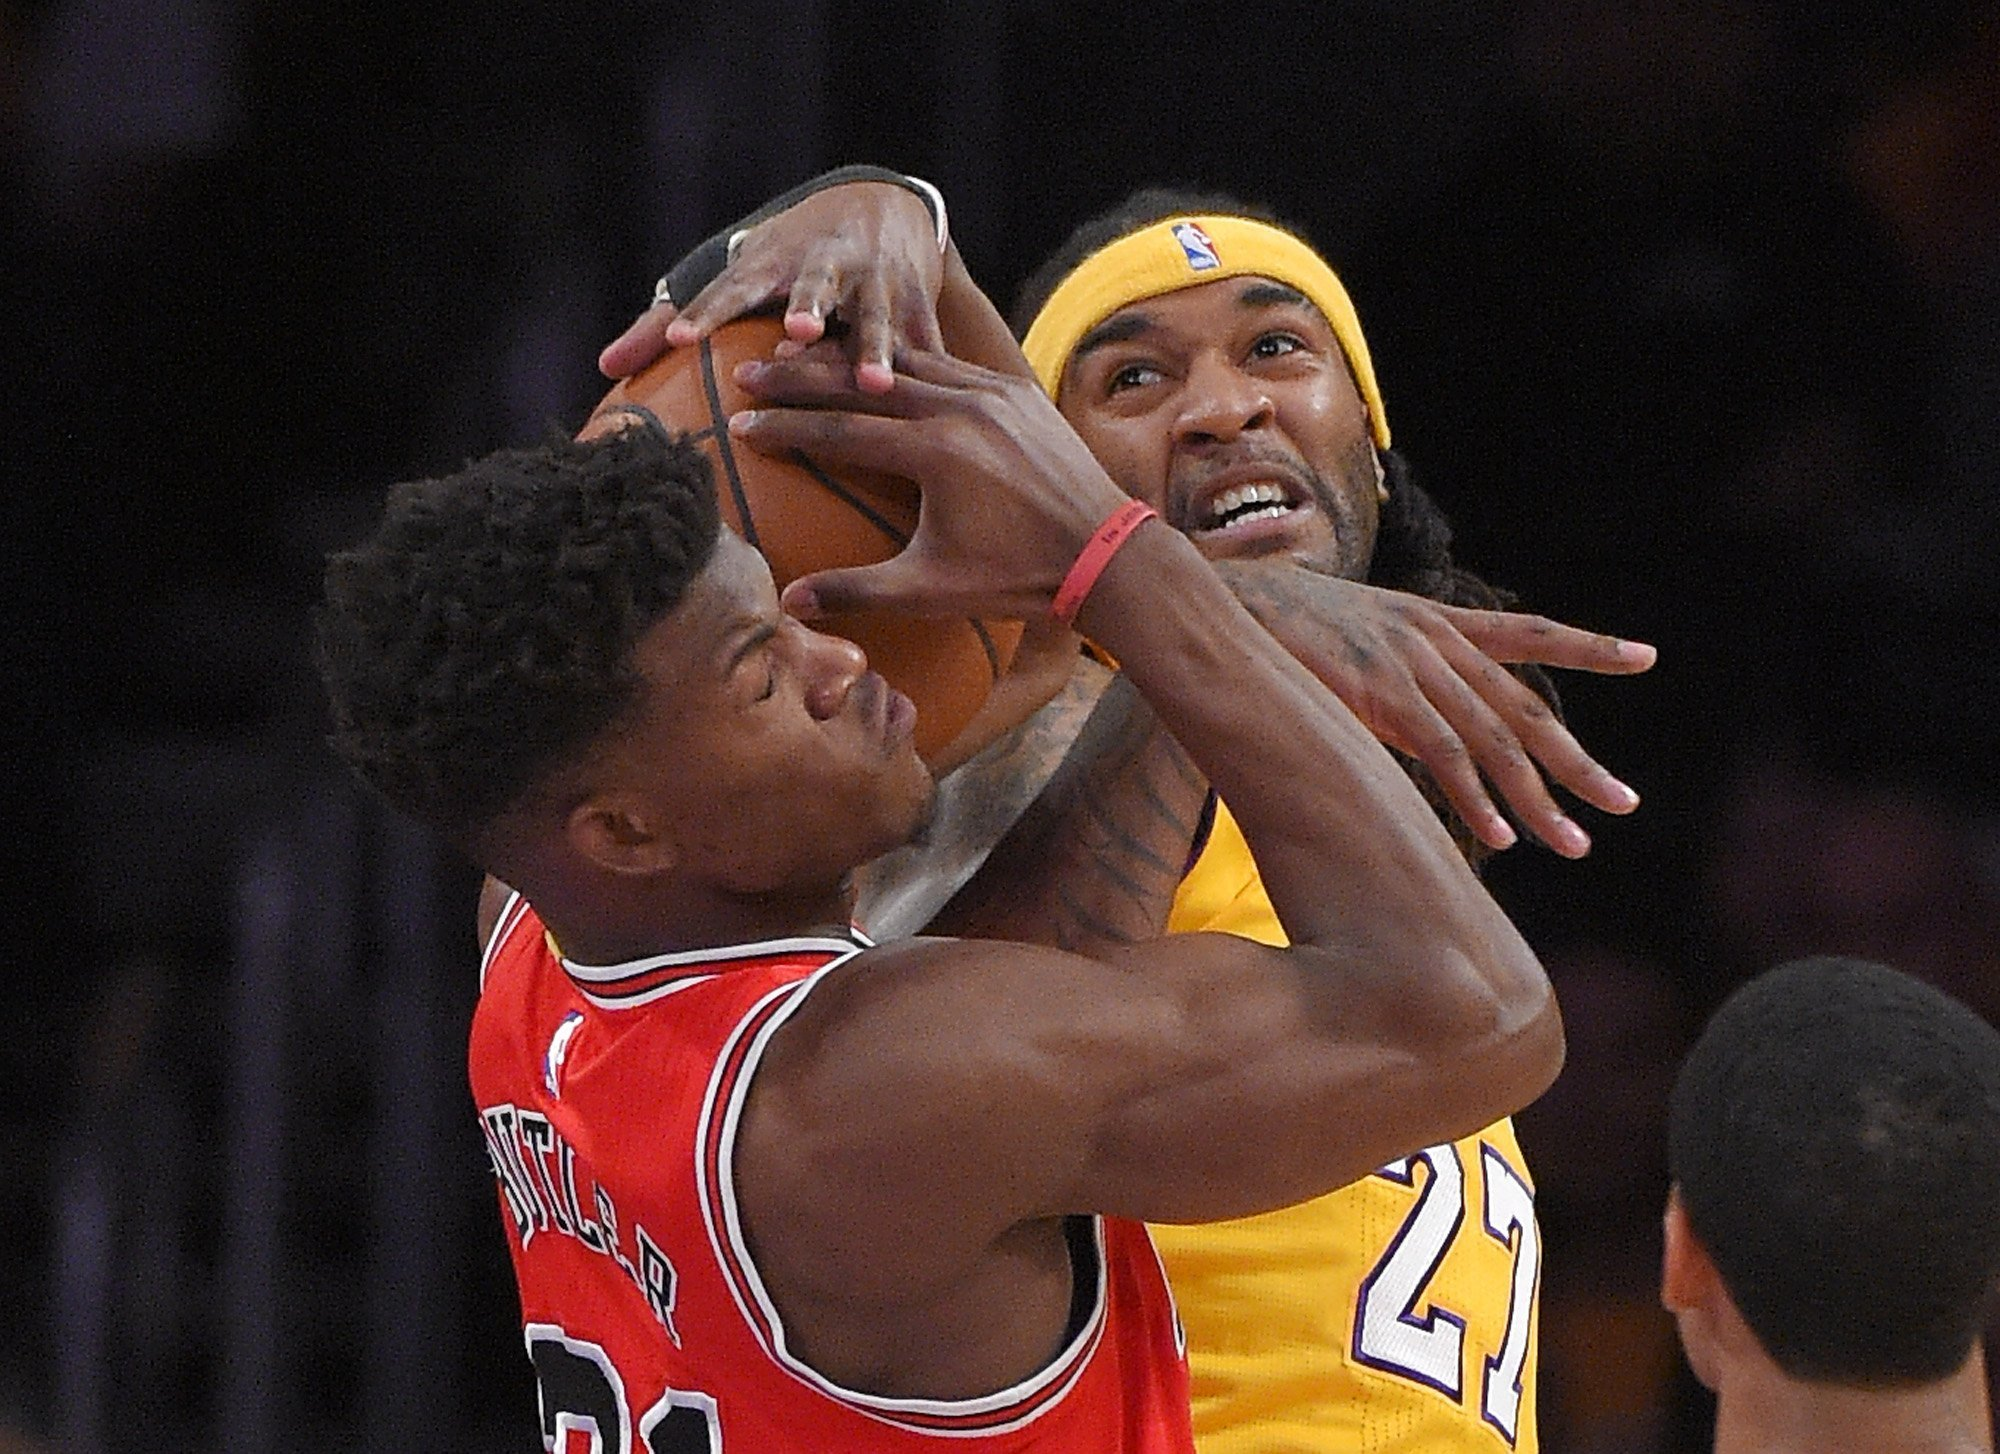 Bulls revert to ugly ways in double-overtime loss to Lakers